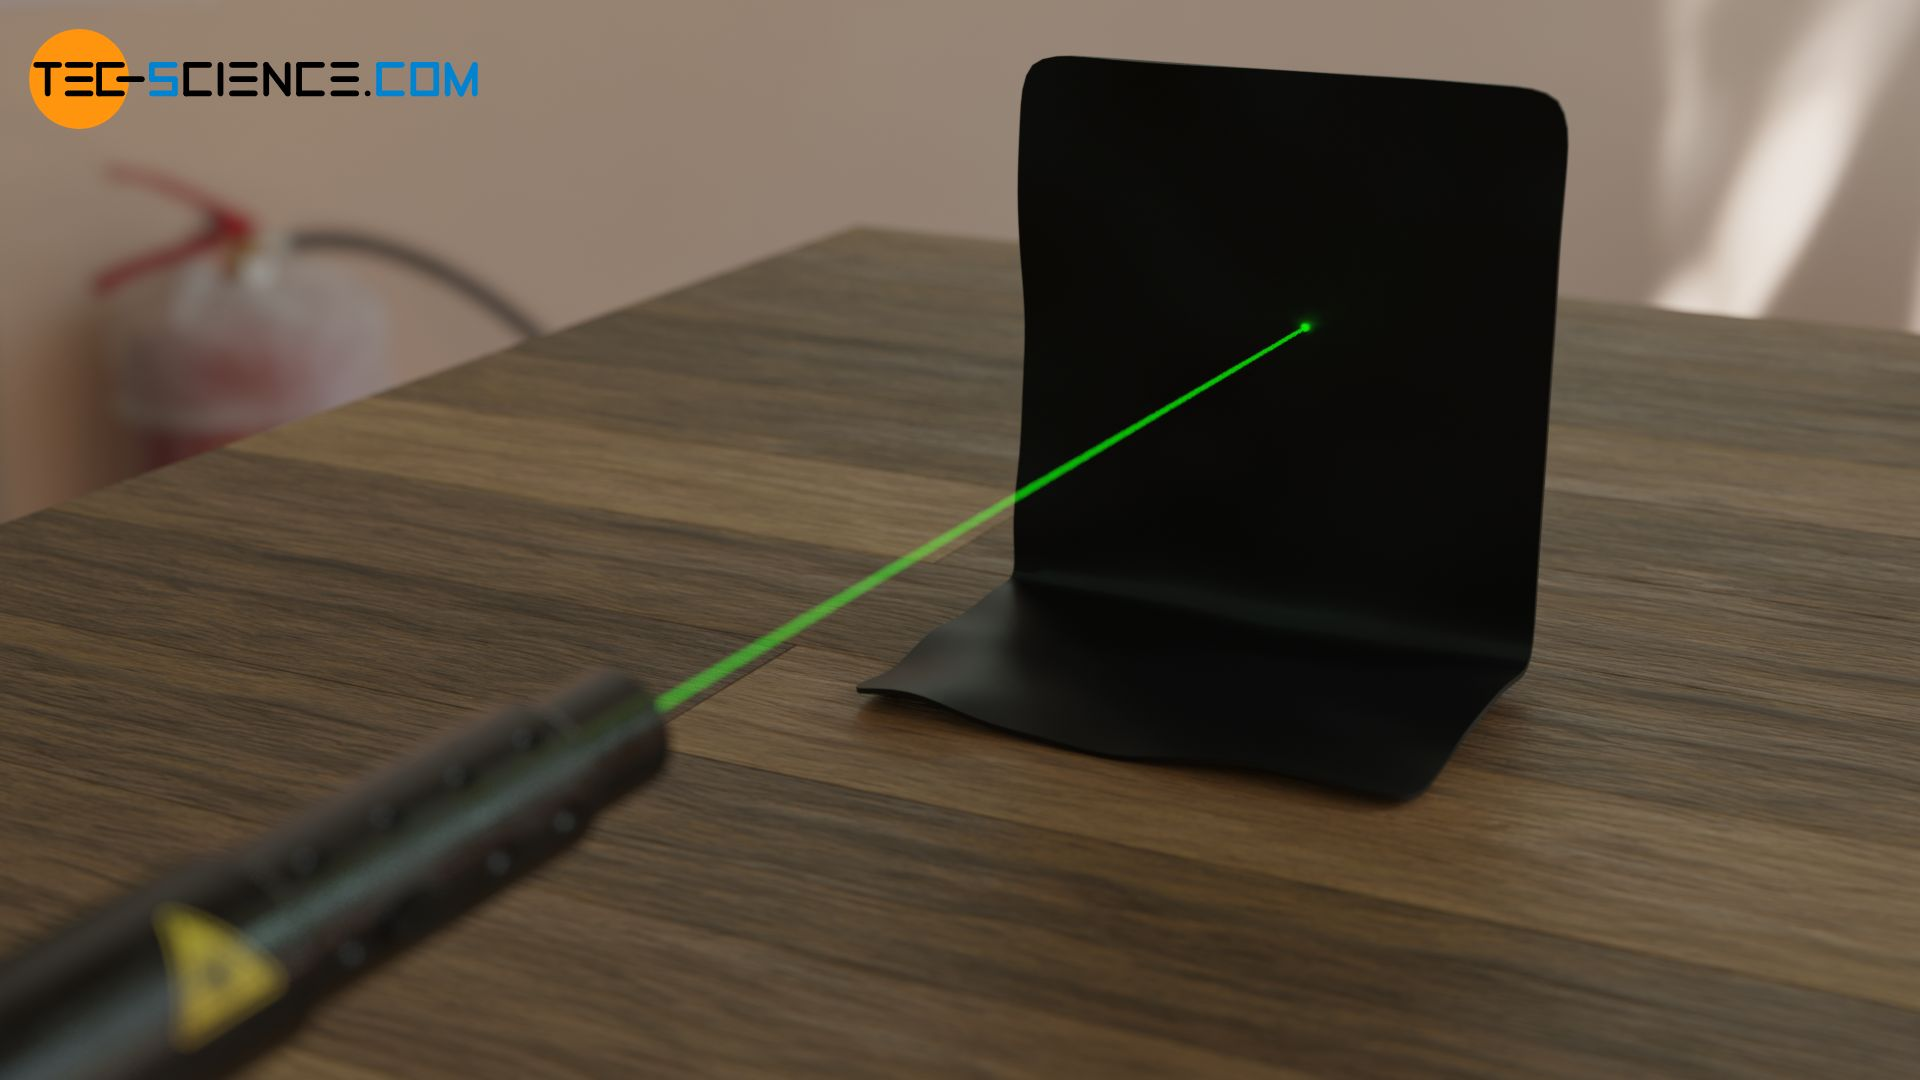 Laser beam on an absorbing surface